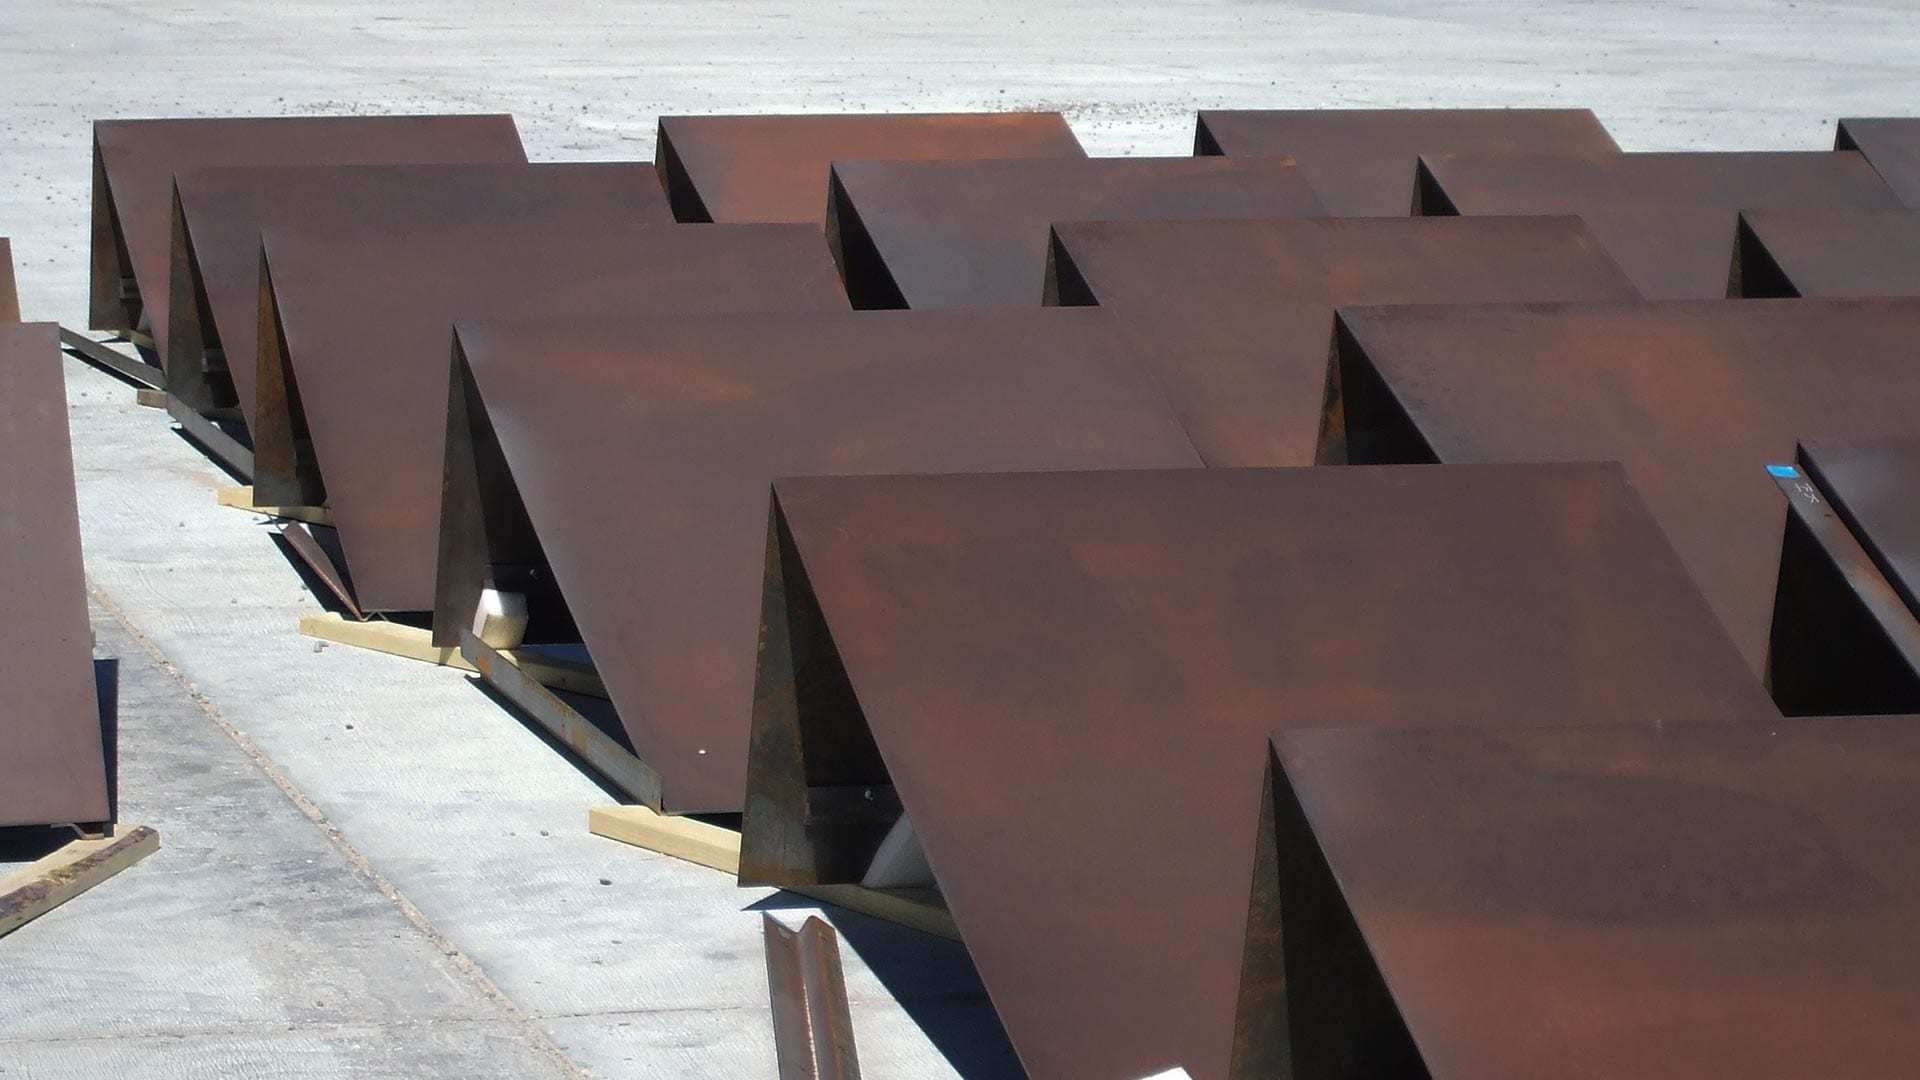 Photograph of the header panels before installation on Spaceport America.